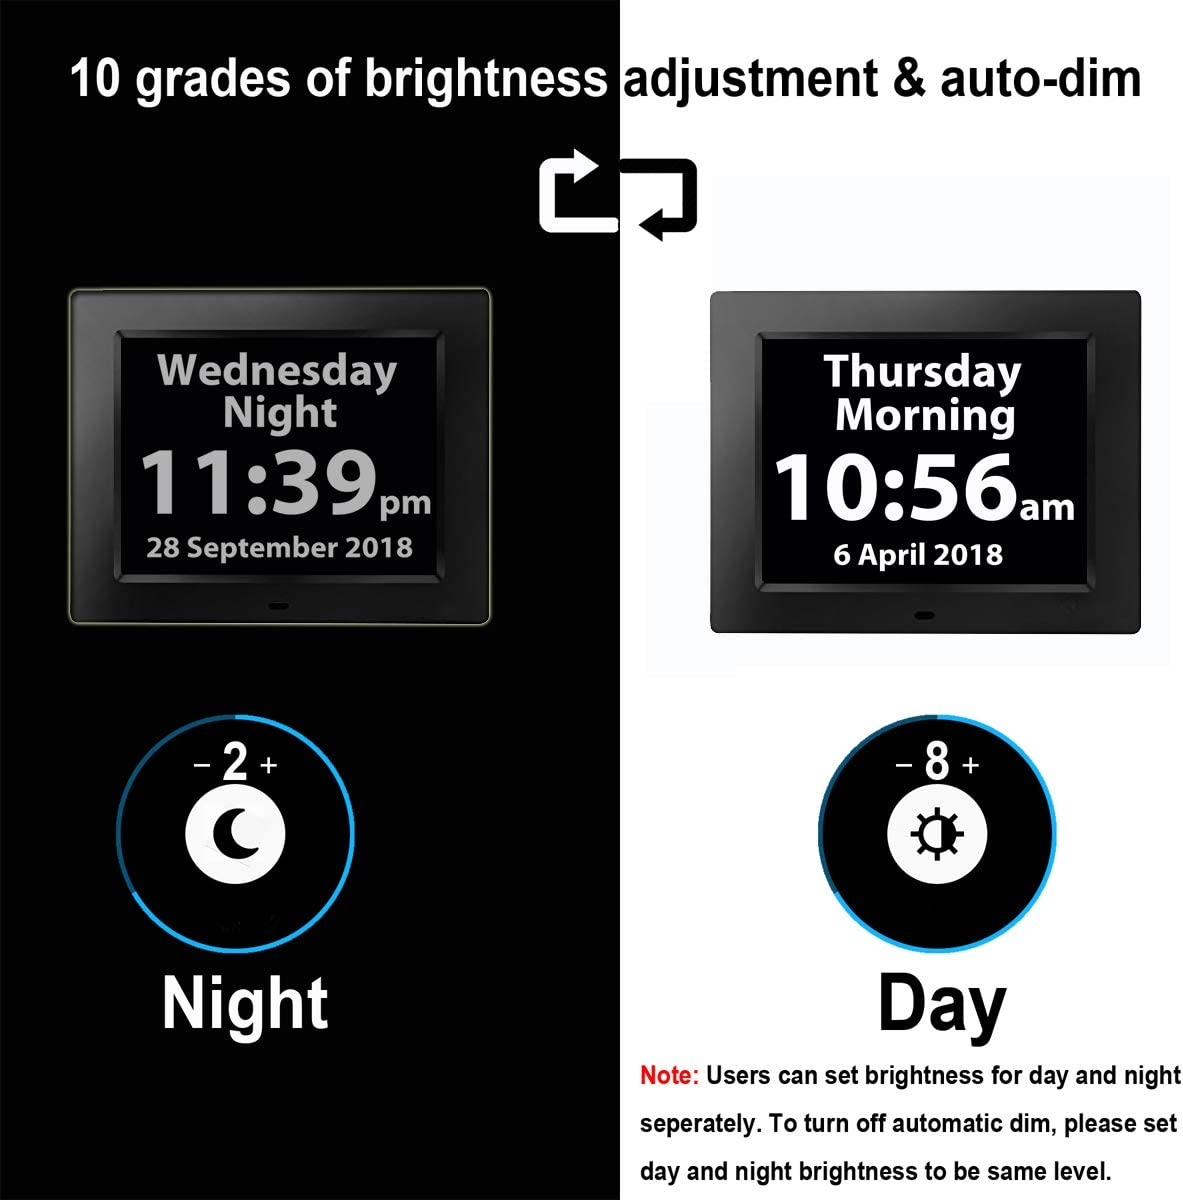 16 Reminders Digital Day Alarm Clock Electronic Calendar Analog Clocks for Memory Loss Elderly Seniors Dementia Sufferers Alzheimers Products Wall Vision Impaired Patients Kids Room 2020 Version V/éfa/î/î White